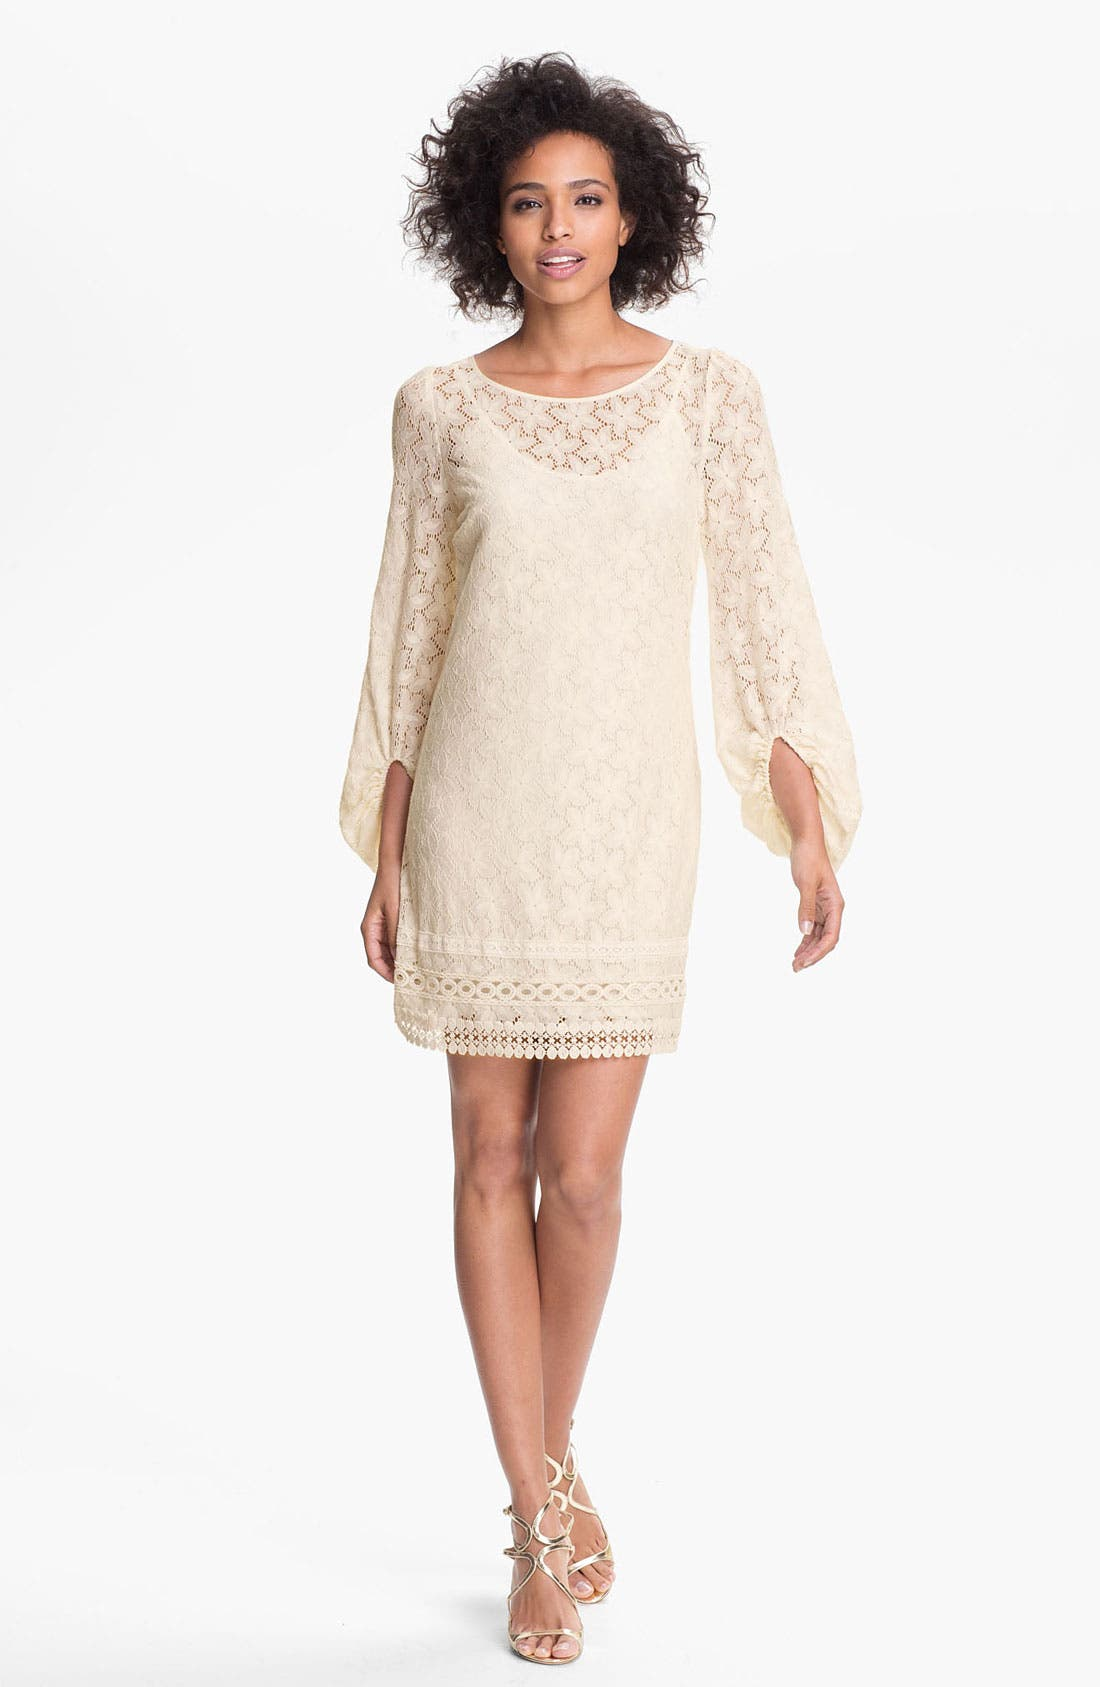 Main Image - Laundry by Shelli Segal 'Sand Dollar' Lace Shift Dress (Petite)